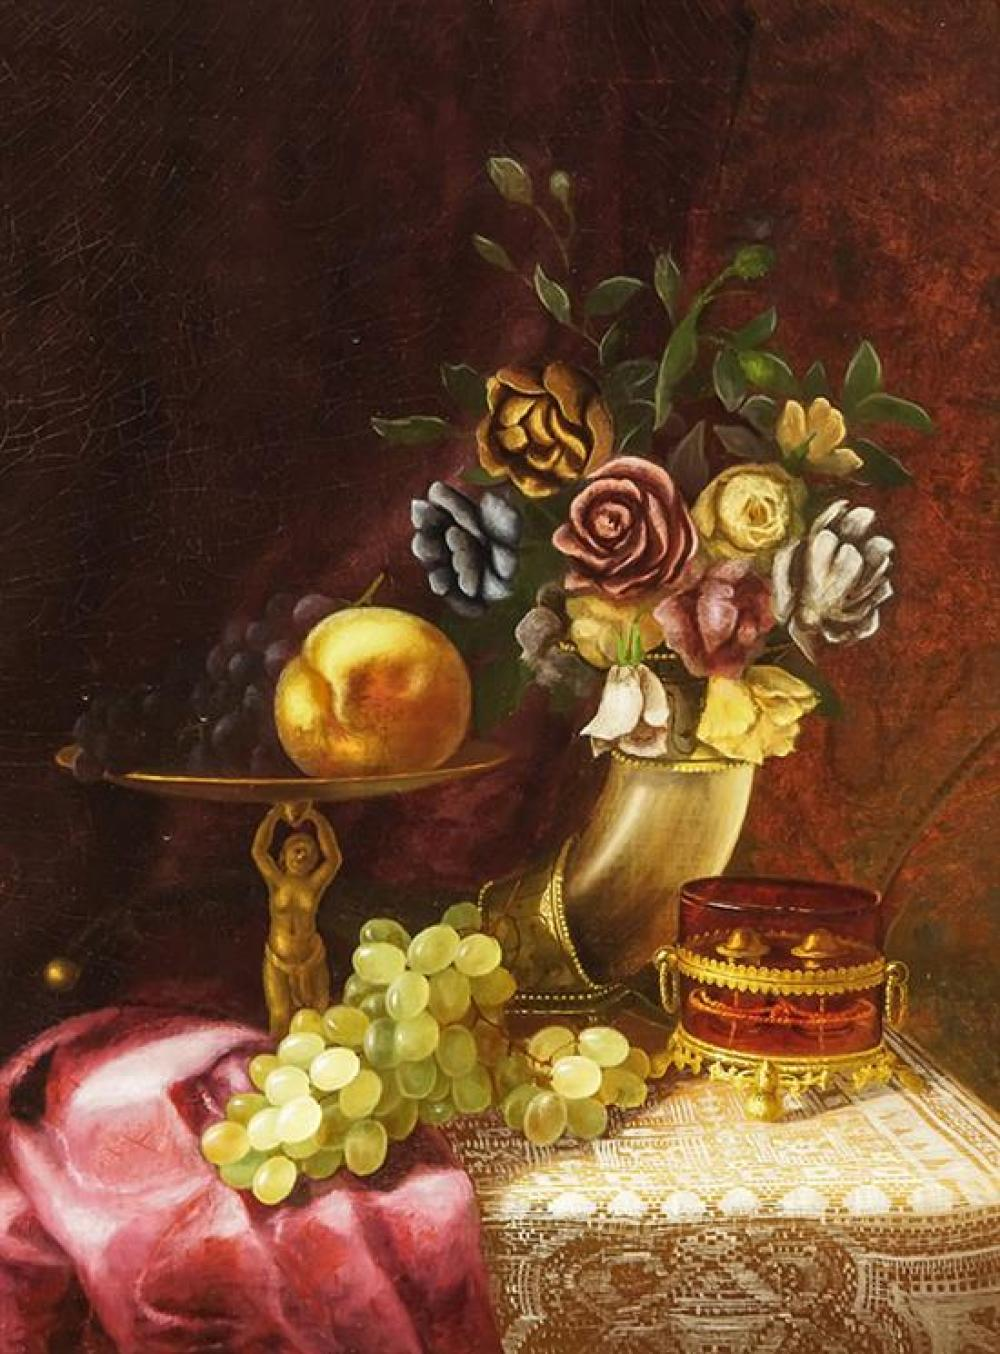 Morston Constantine Ream (American 1840-1898), Still Life with Grapes and Roses